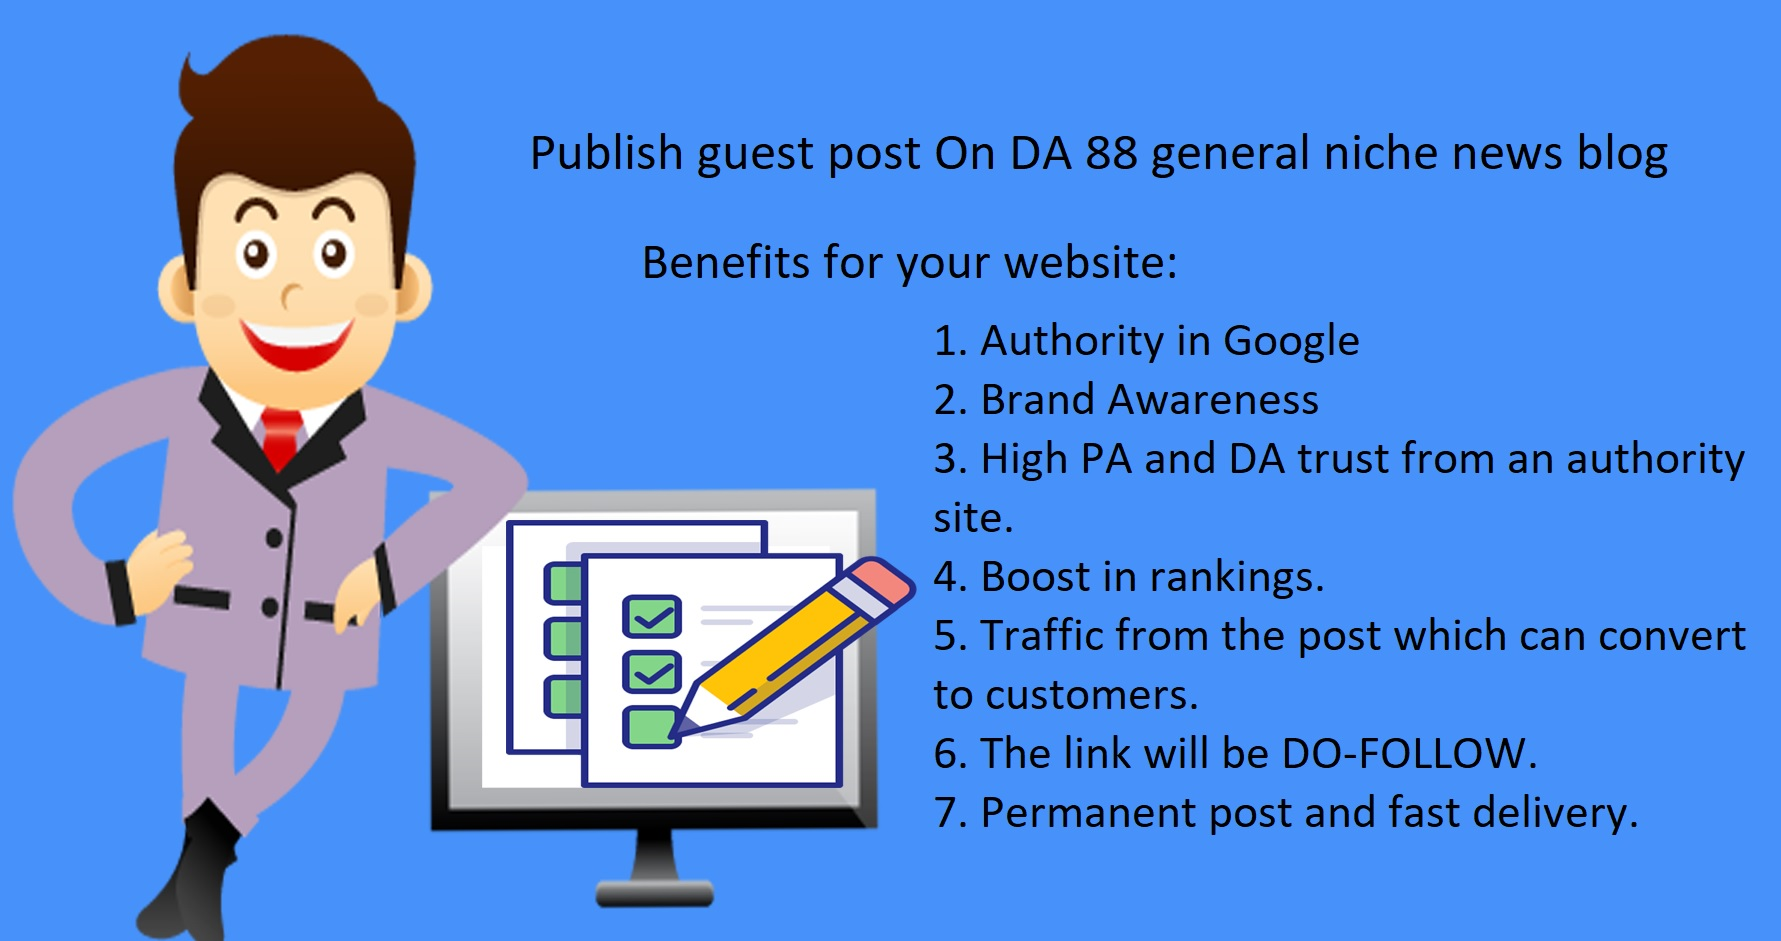 I Will Publish guest post On DA 88 general niche news blog